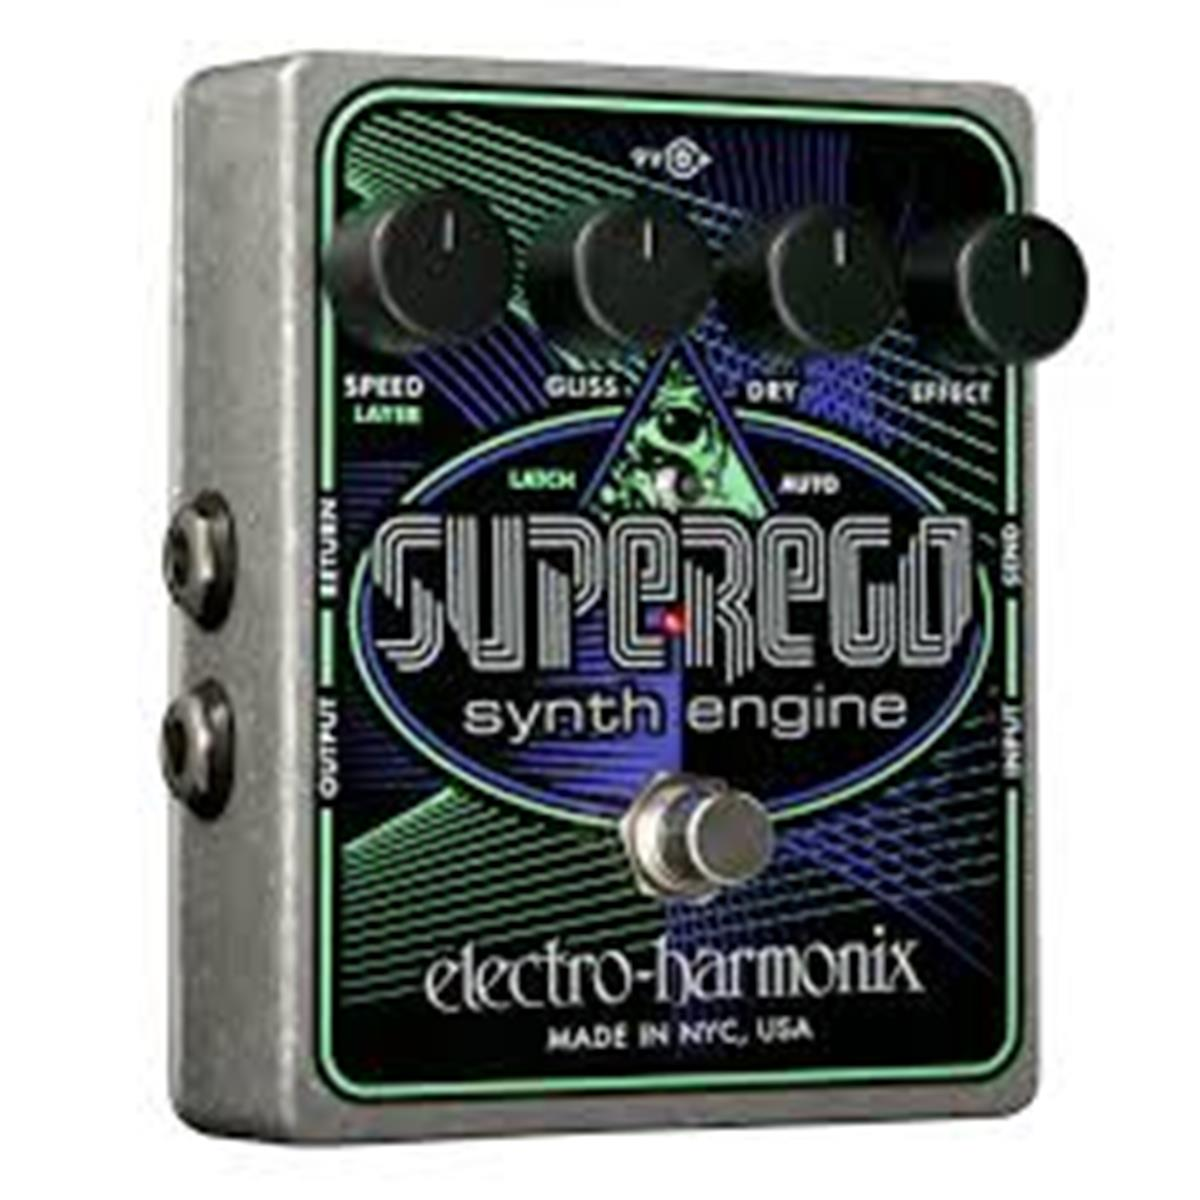 ELECTRO HARMONIX SUPEREGO  Synth engine from Moog to EMS  9.6DC-200 PSU included